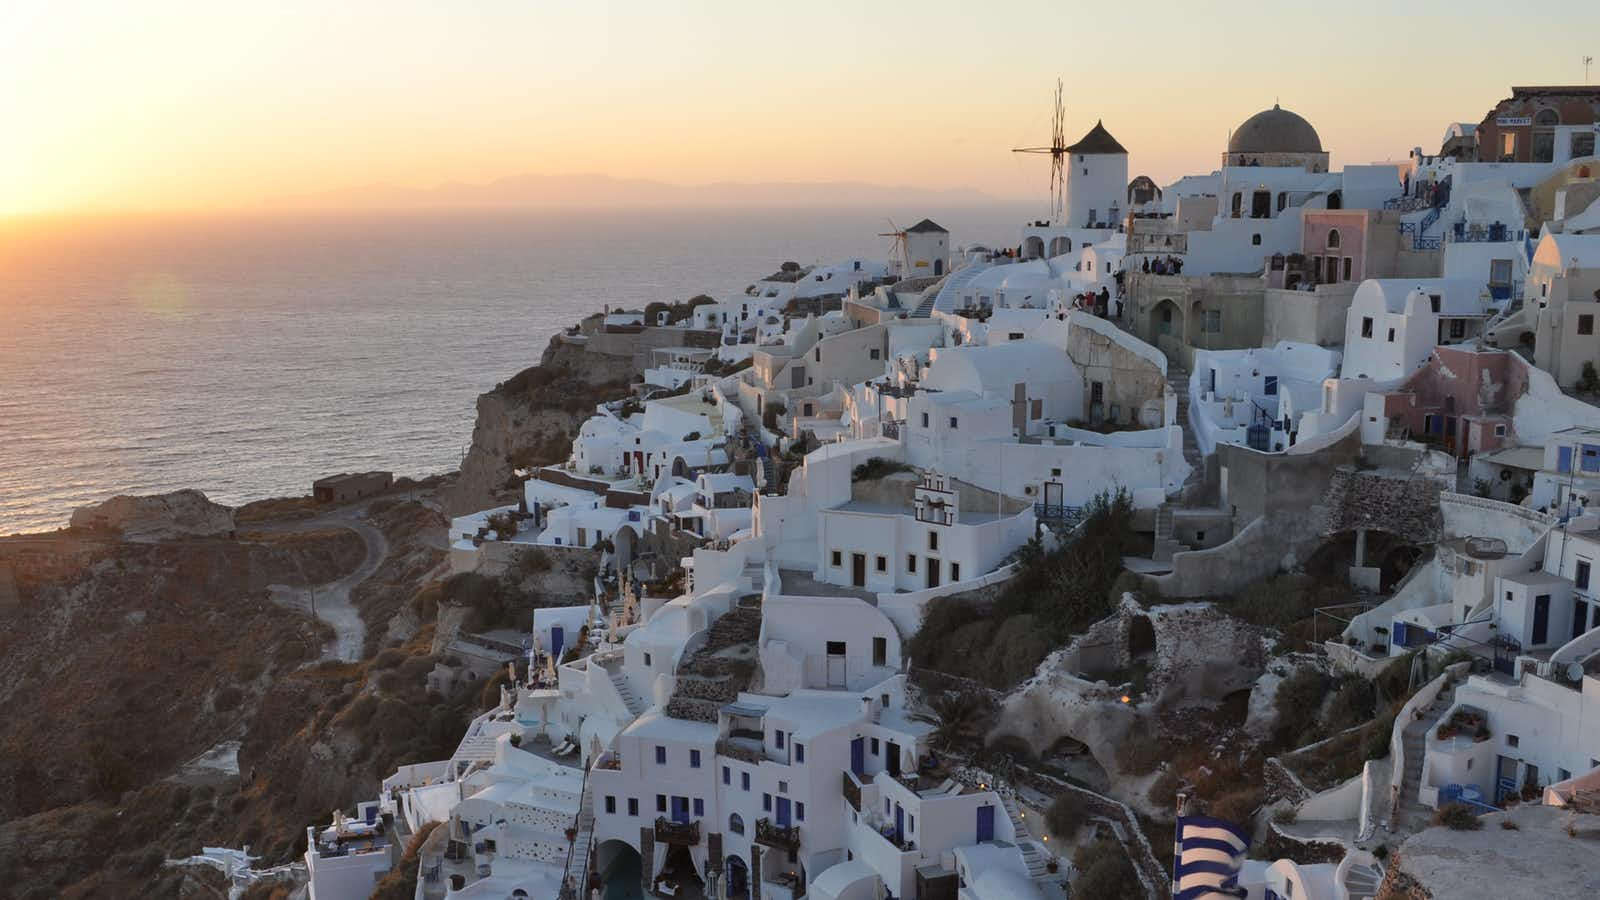 Sunset at Oia in Santorini